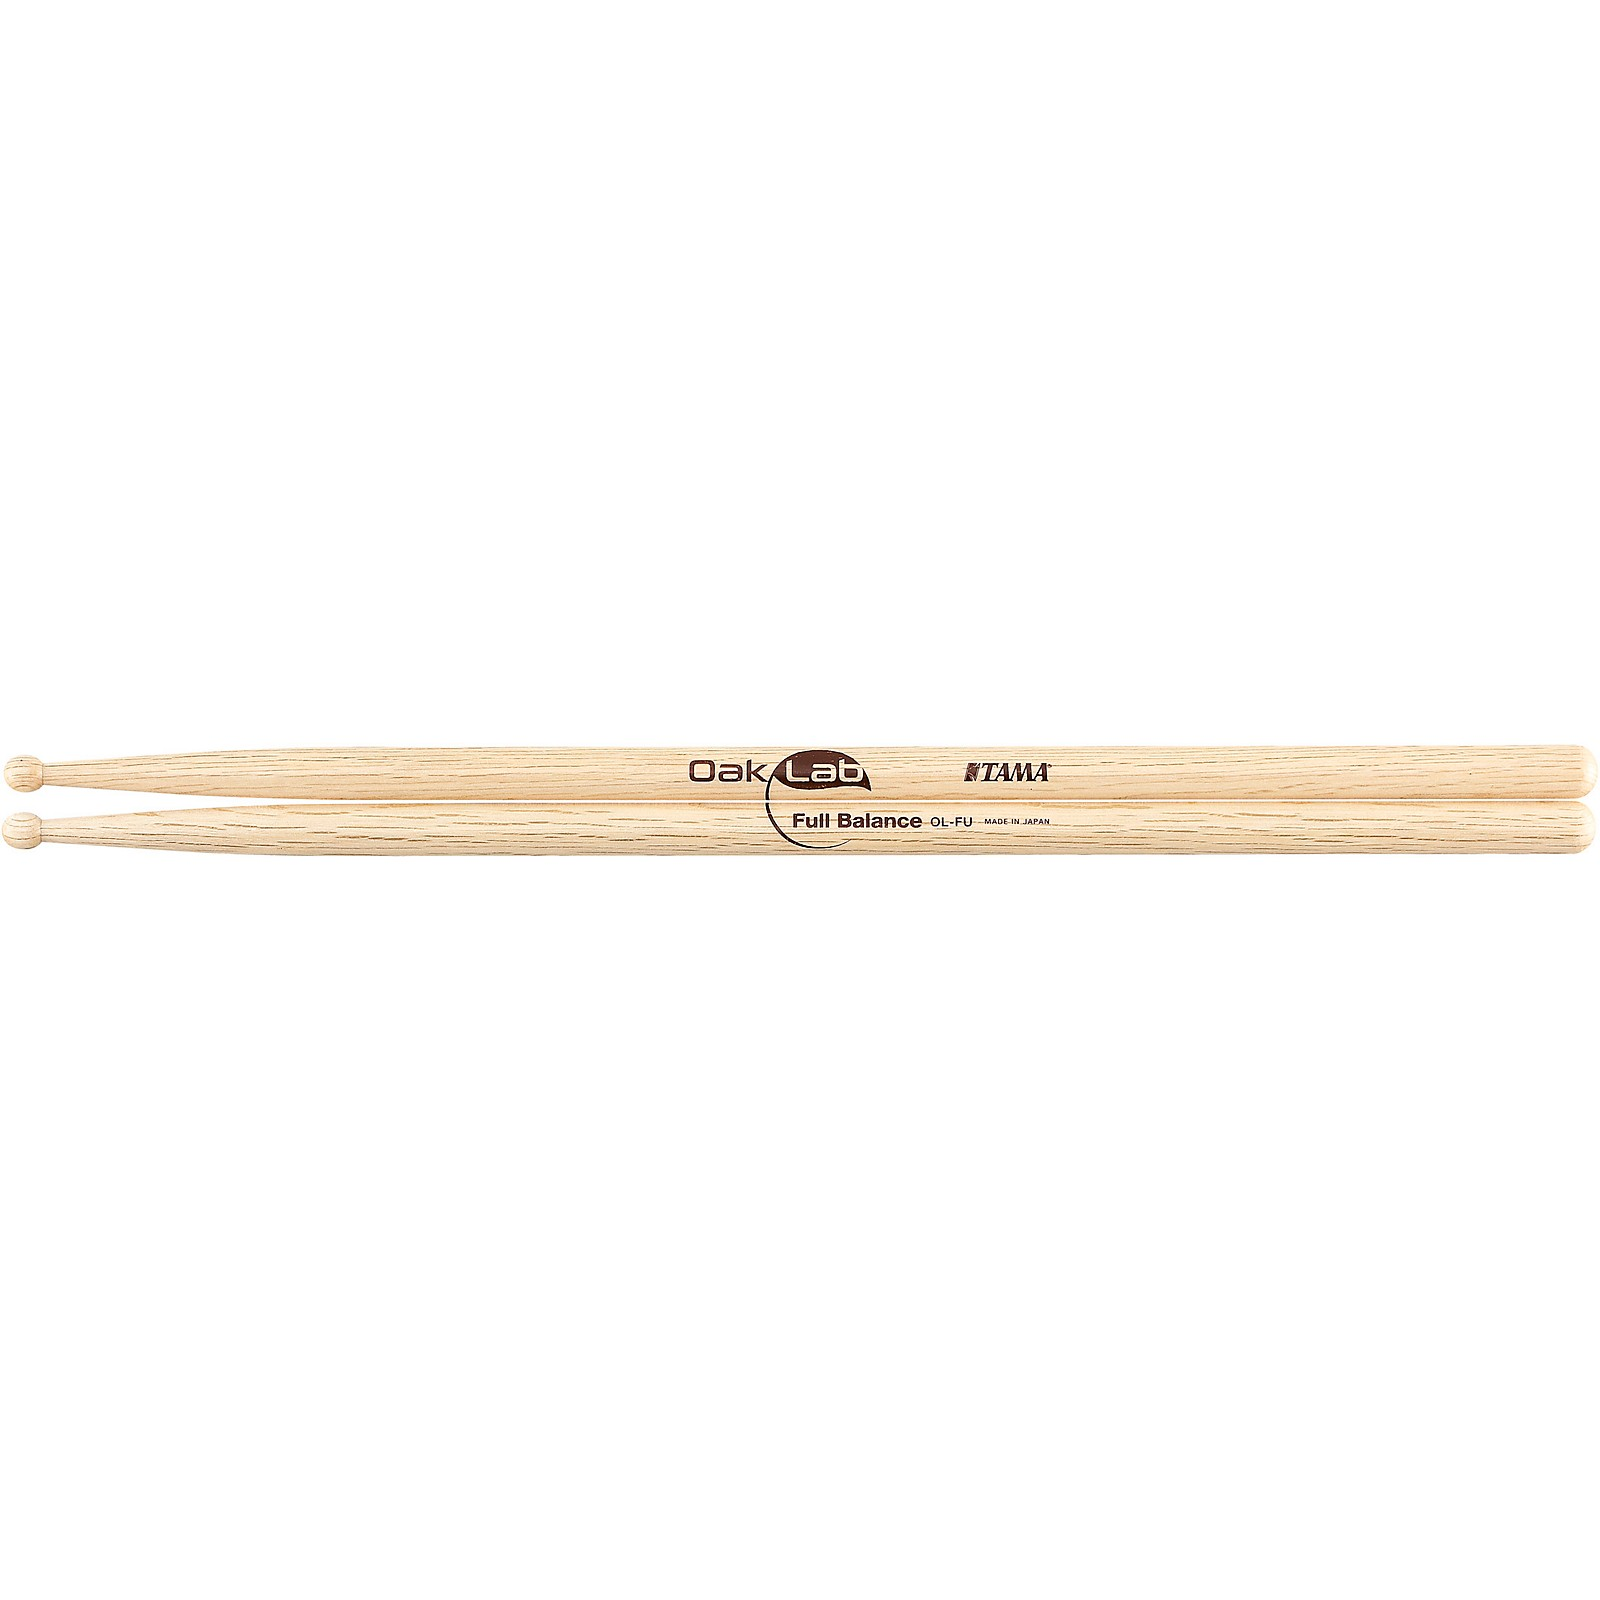 TAMA Oak Lab Series Full Balance Drum Sticks